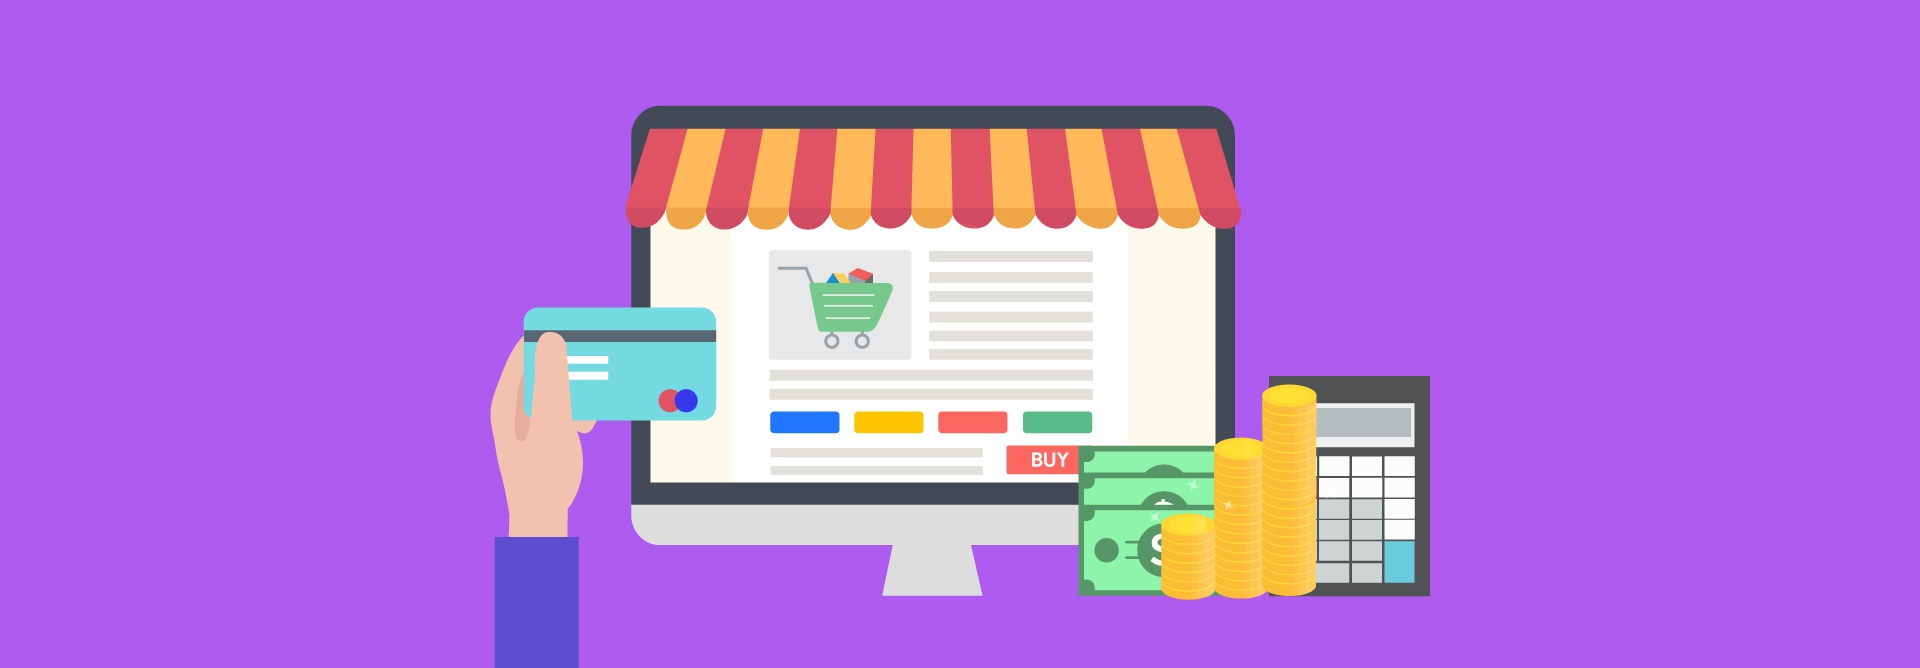 What Do You Need To Know About Razer Merchant Services Recurring Payments?